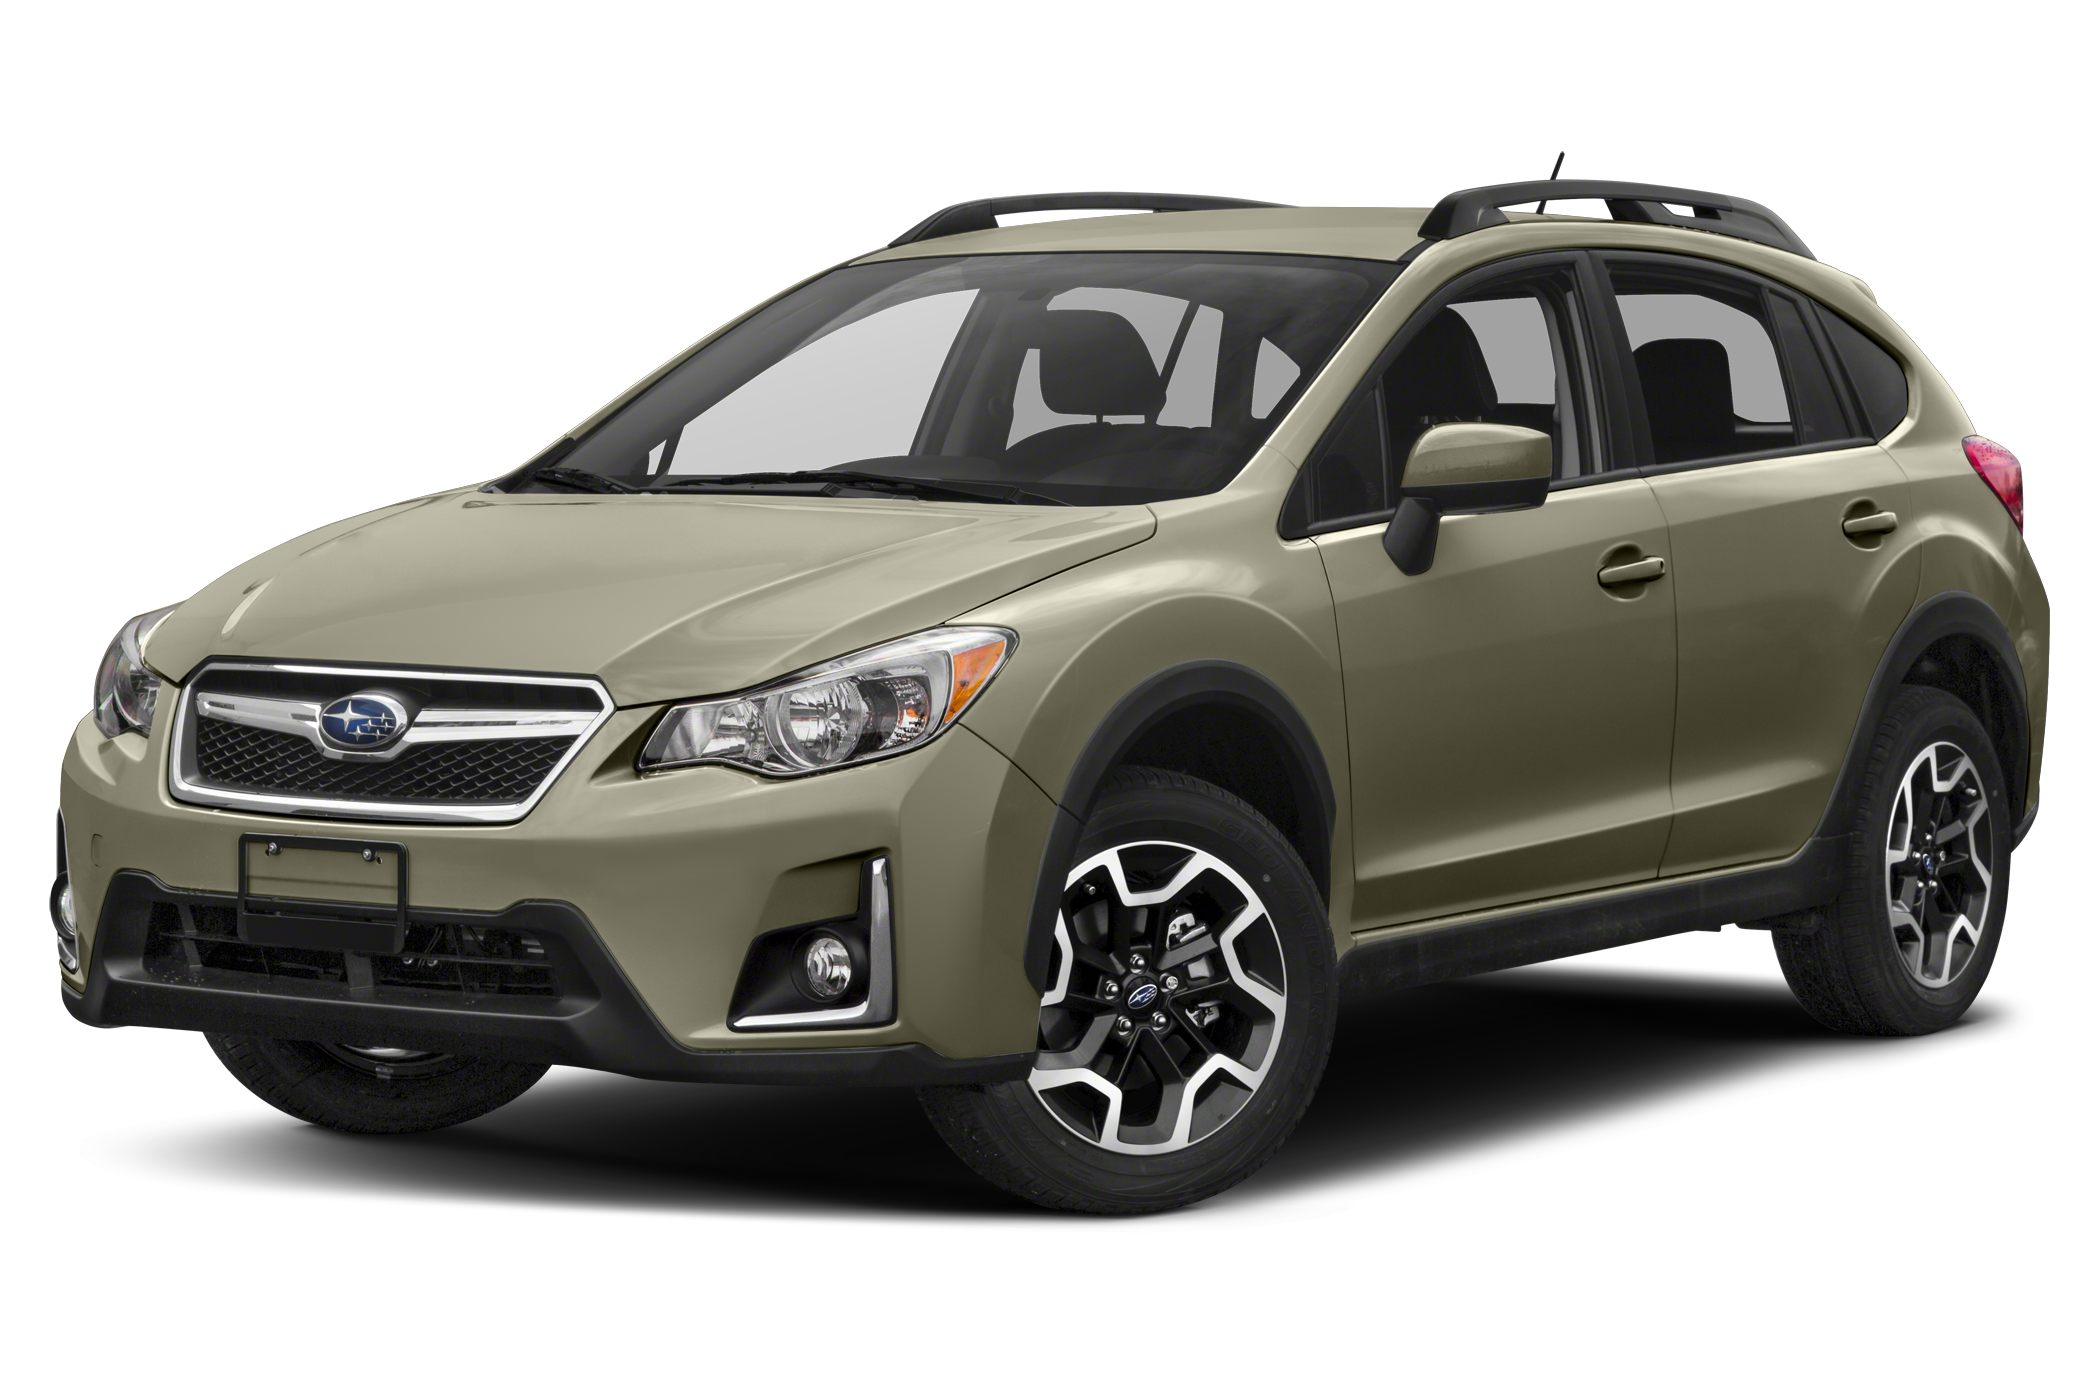 2017 subaru crosstrek 2.0i premium 4dr all-wheel drive information